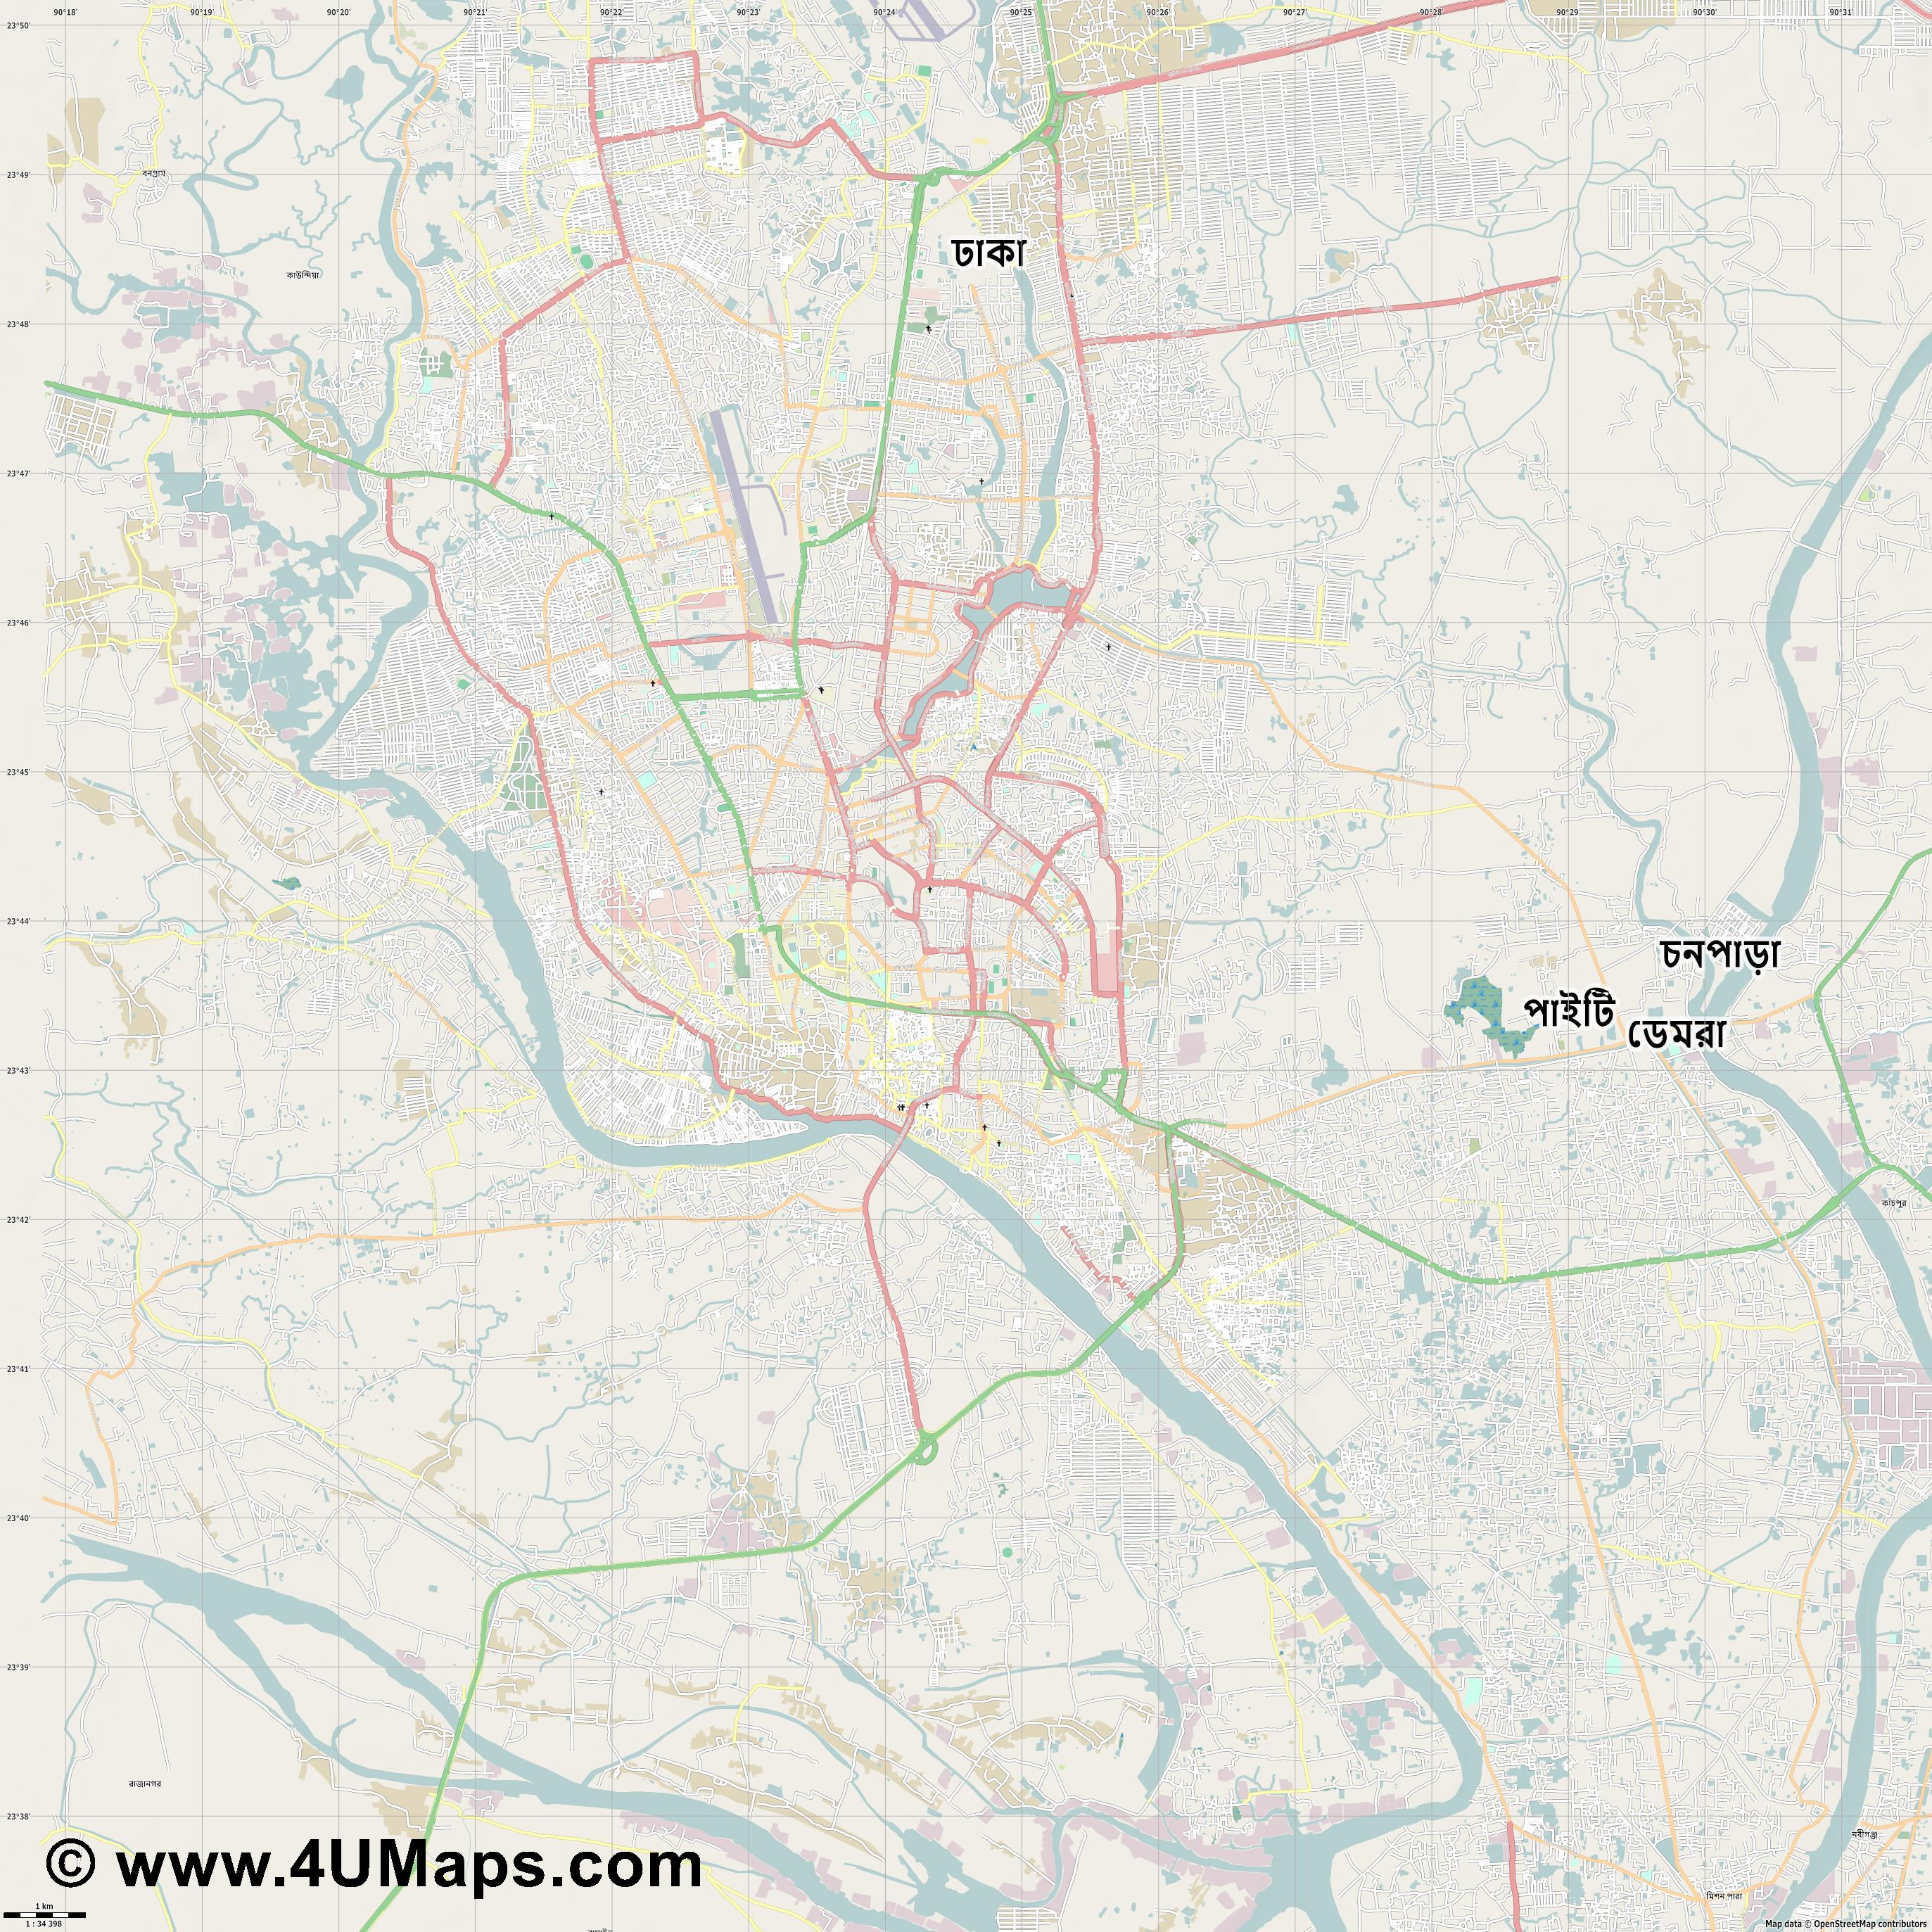 Dhaka Dacca  jpg high detail, large area preview vector city map